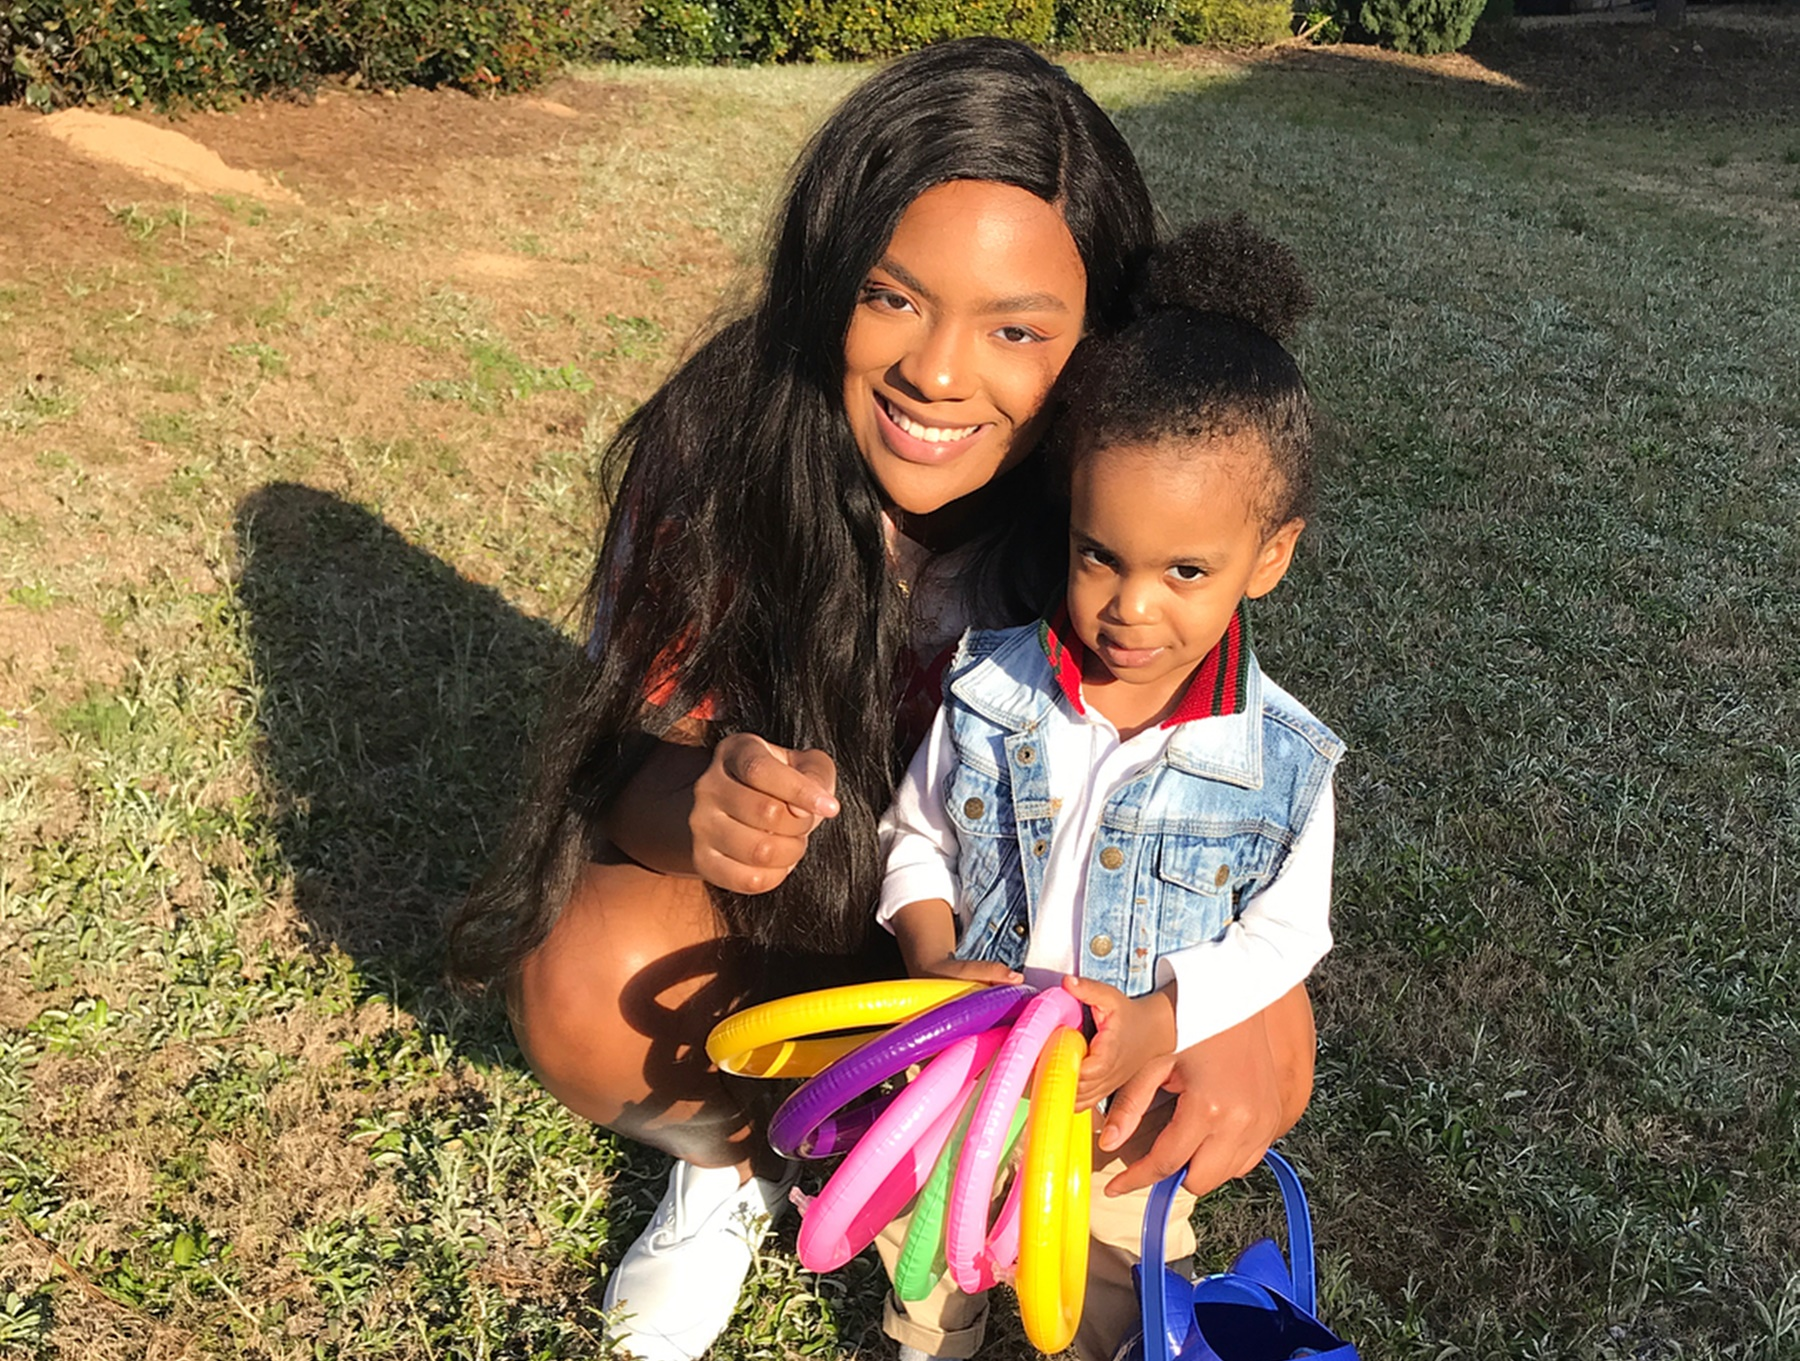 kandi-burruss-daughter-riley-burruss-has-a-photo-session-with-ace-wells-tucker-his-smile-brightens-fans-day